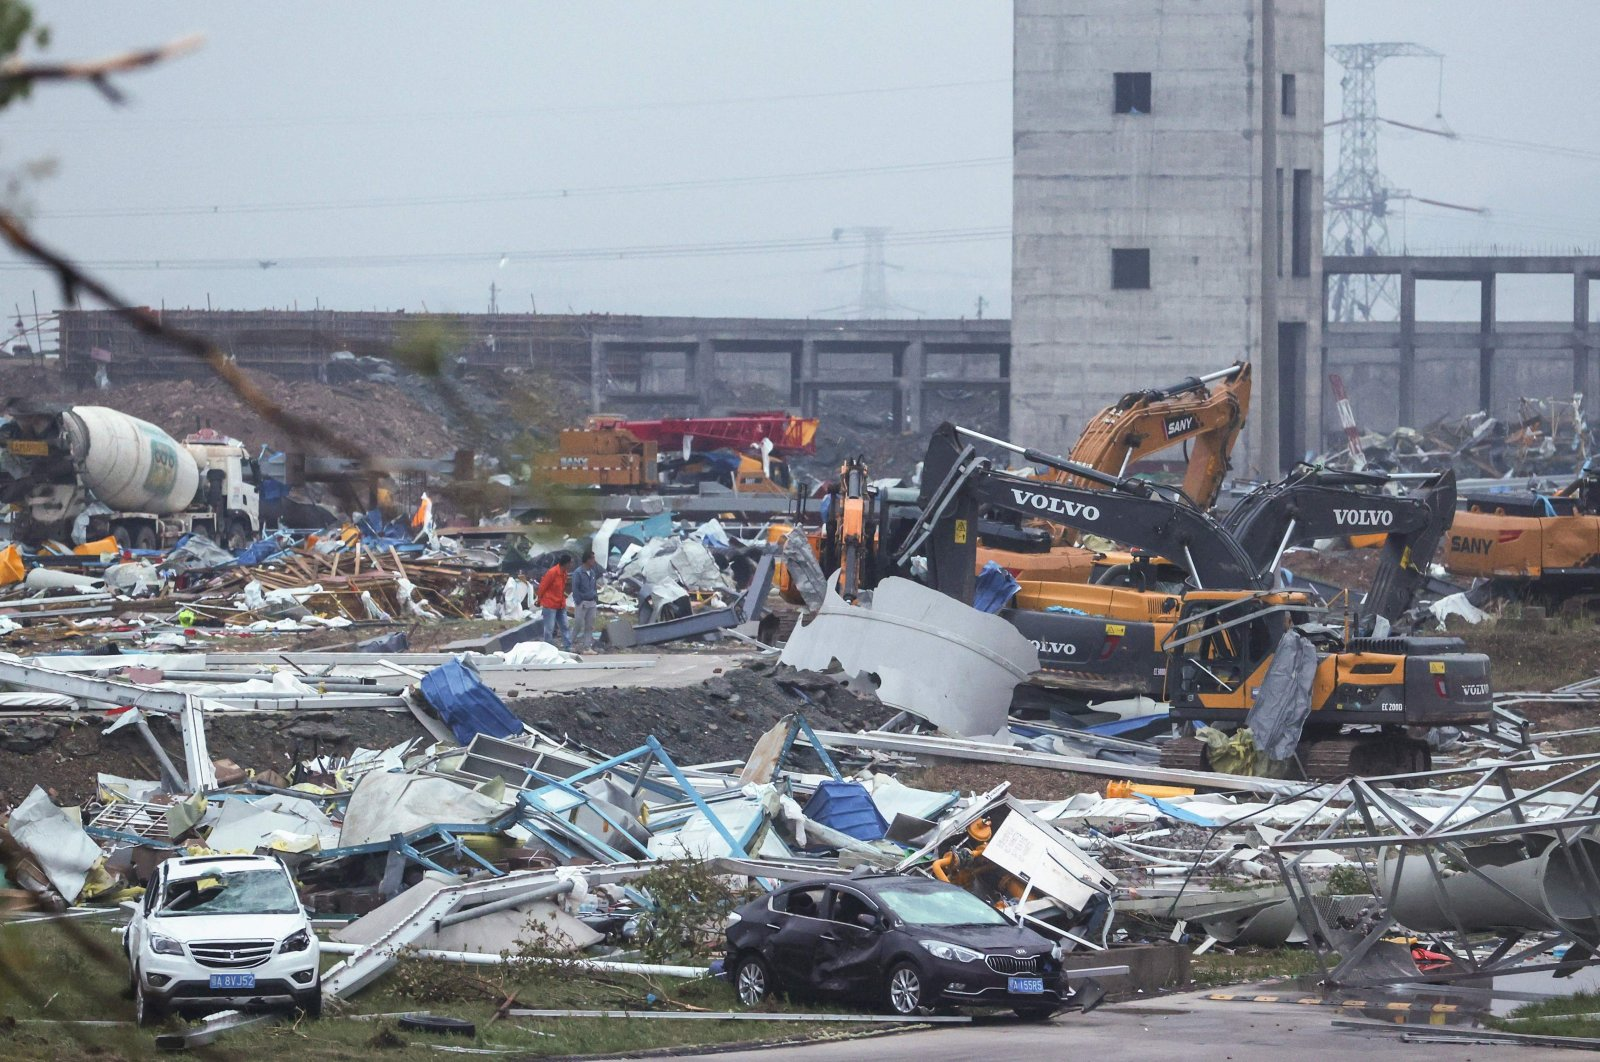 Damaged vehicles and debris are pictured at a construction site after a tornado hit an economic zone in Wuhan, central Hubei province, China, May 15, 2021. (AFP Photo)